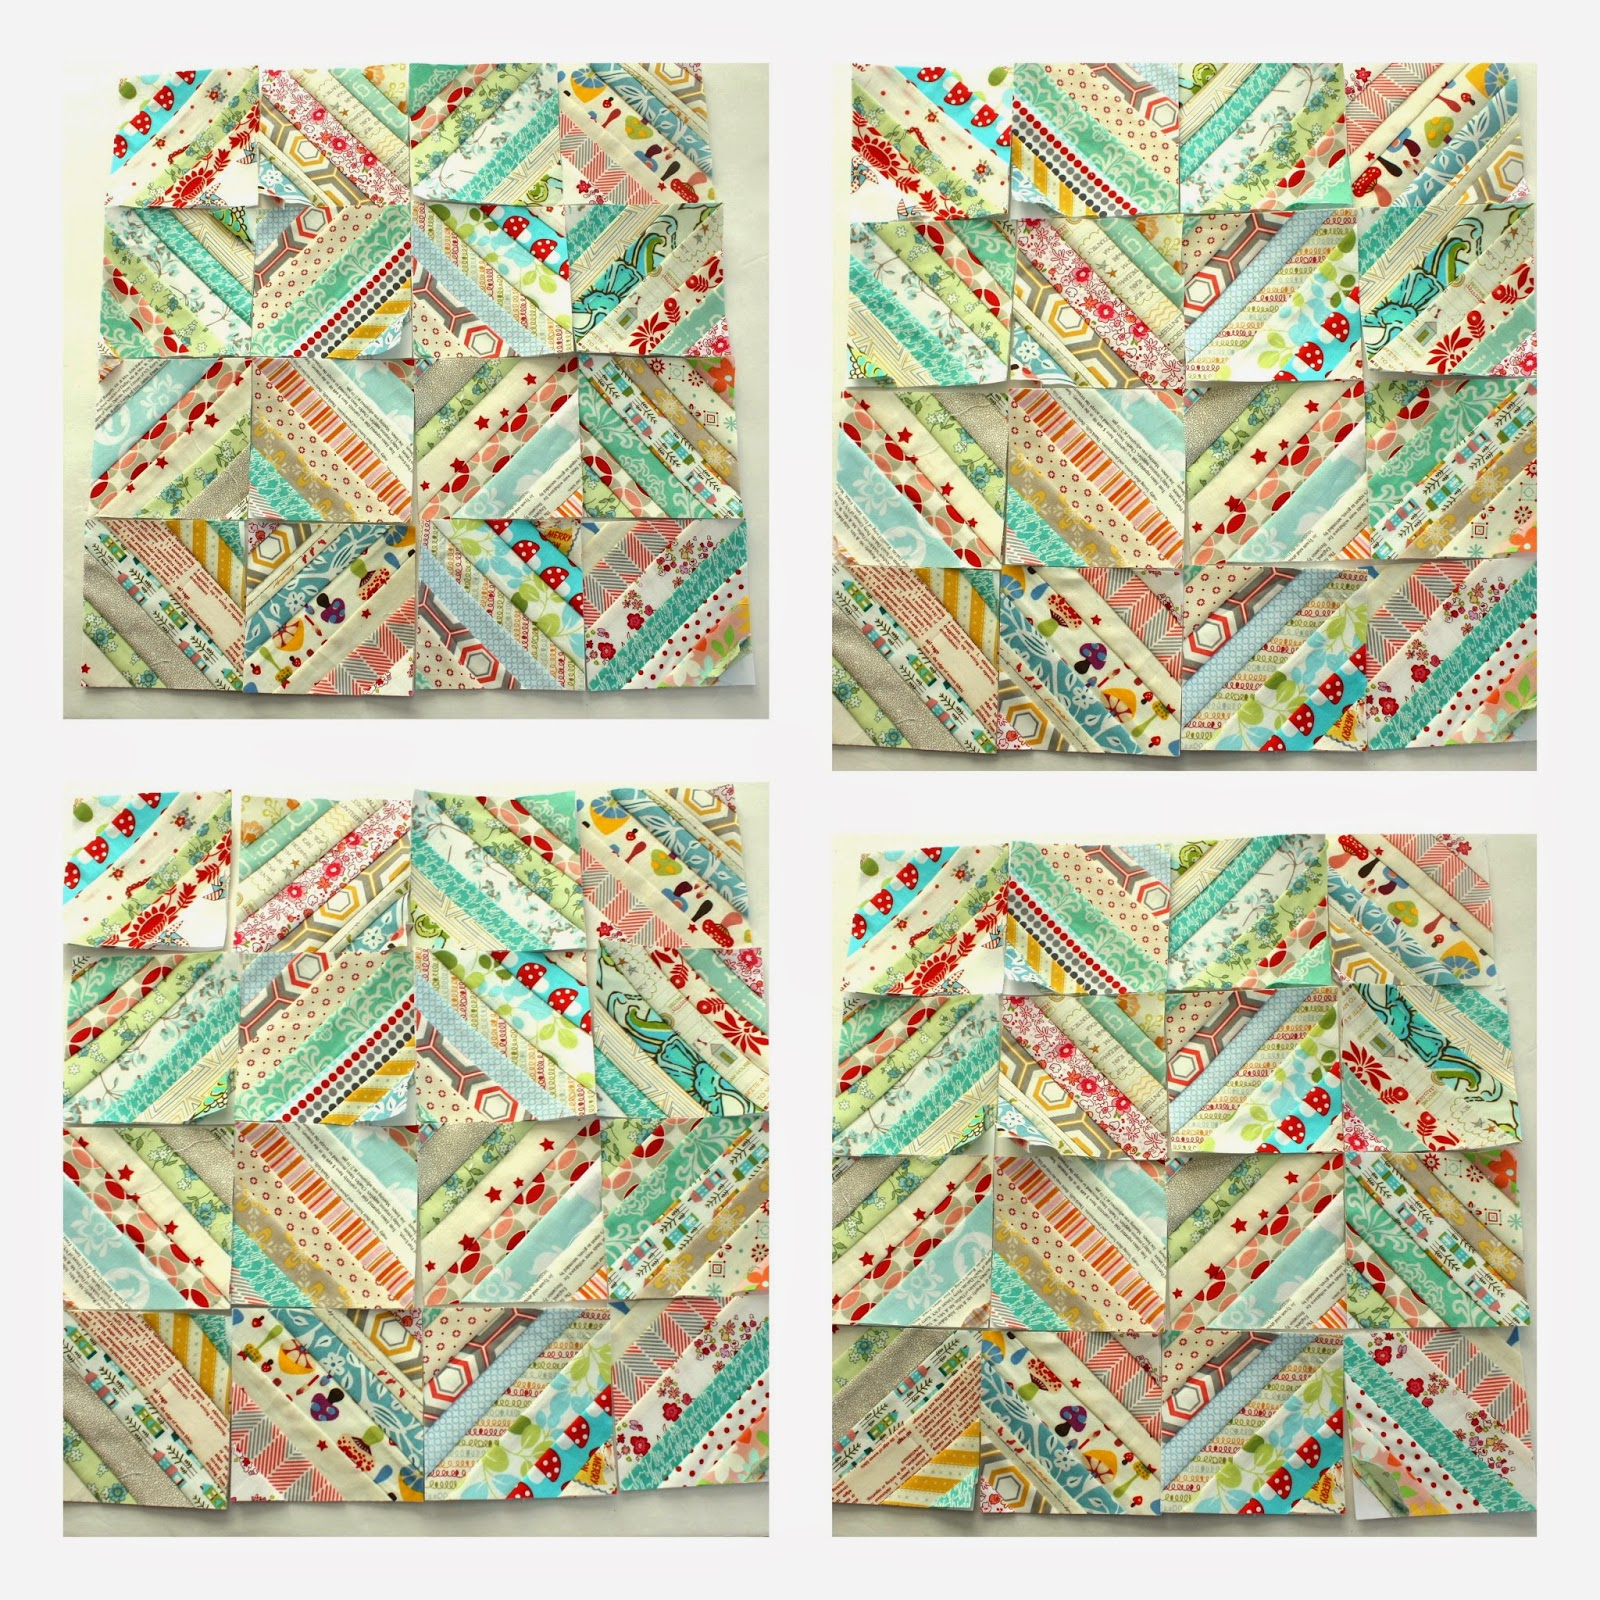 Quilt Patterns With Two Fabrics : Easy Scrap fabric quilt block - Diary of a Quilter - a quilt blog